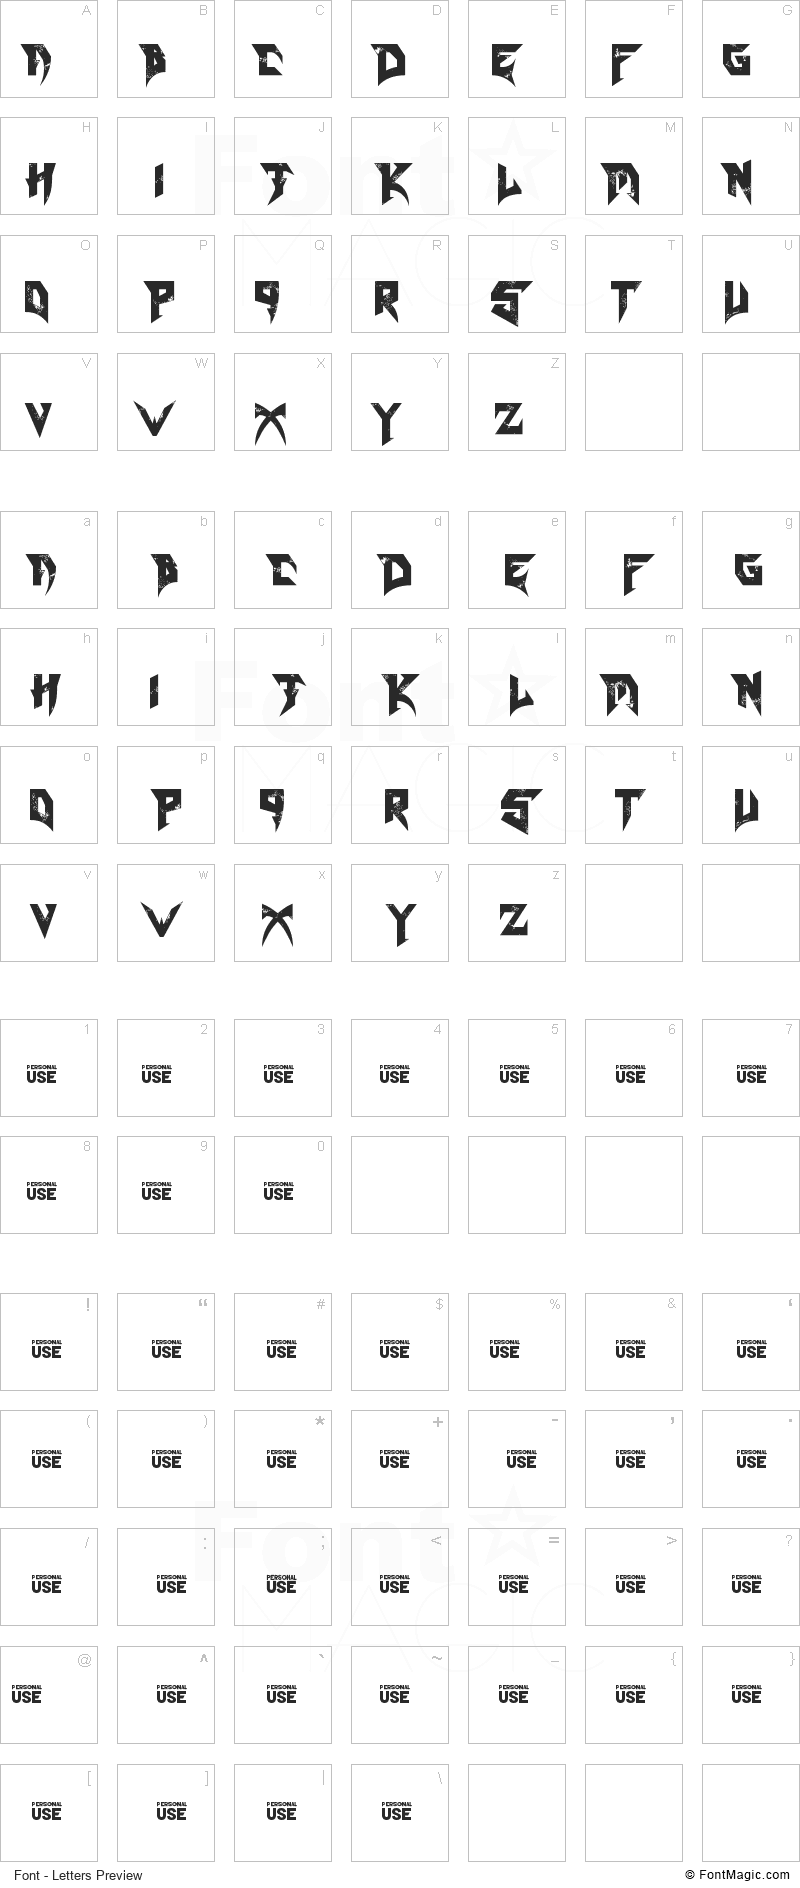 Blade Font - All Latters Preview Chart